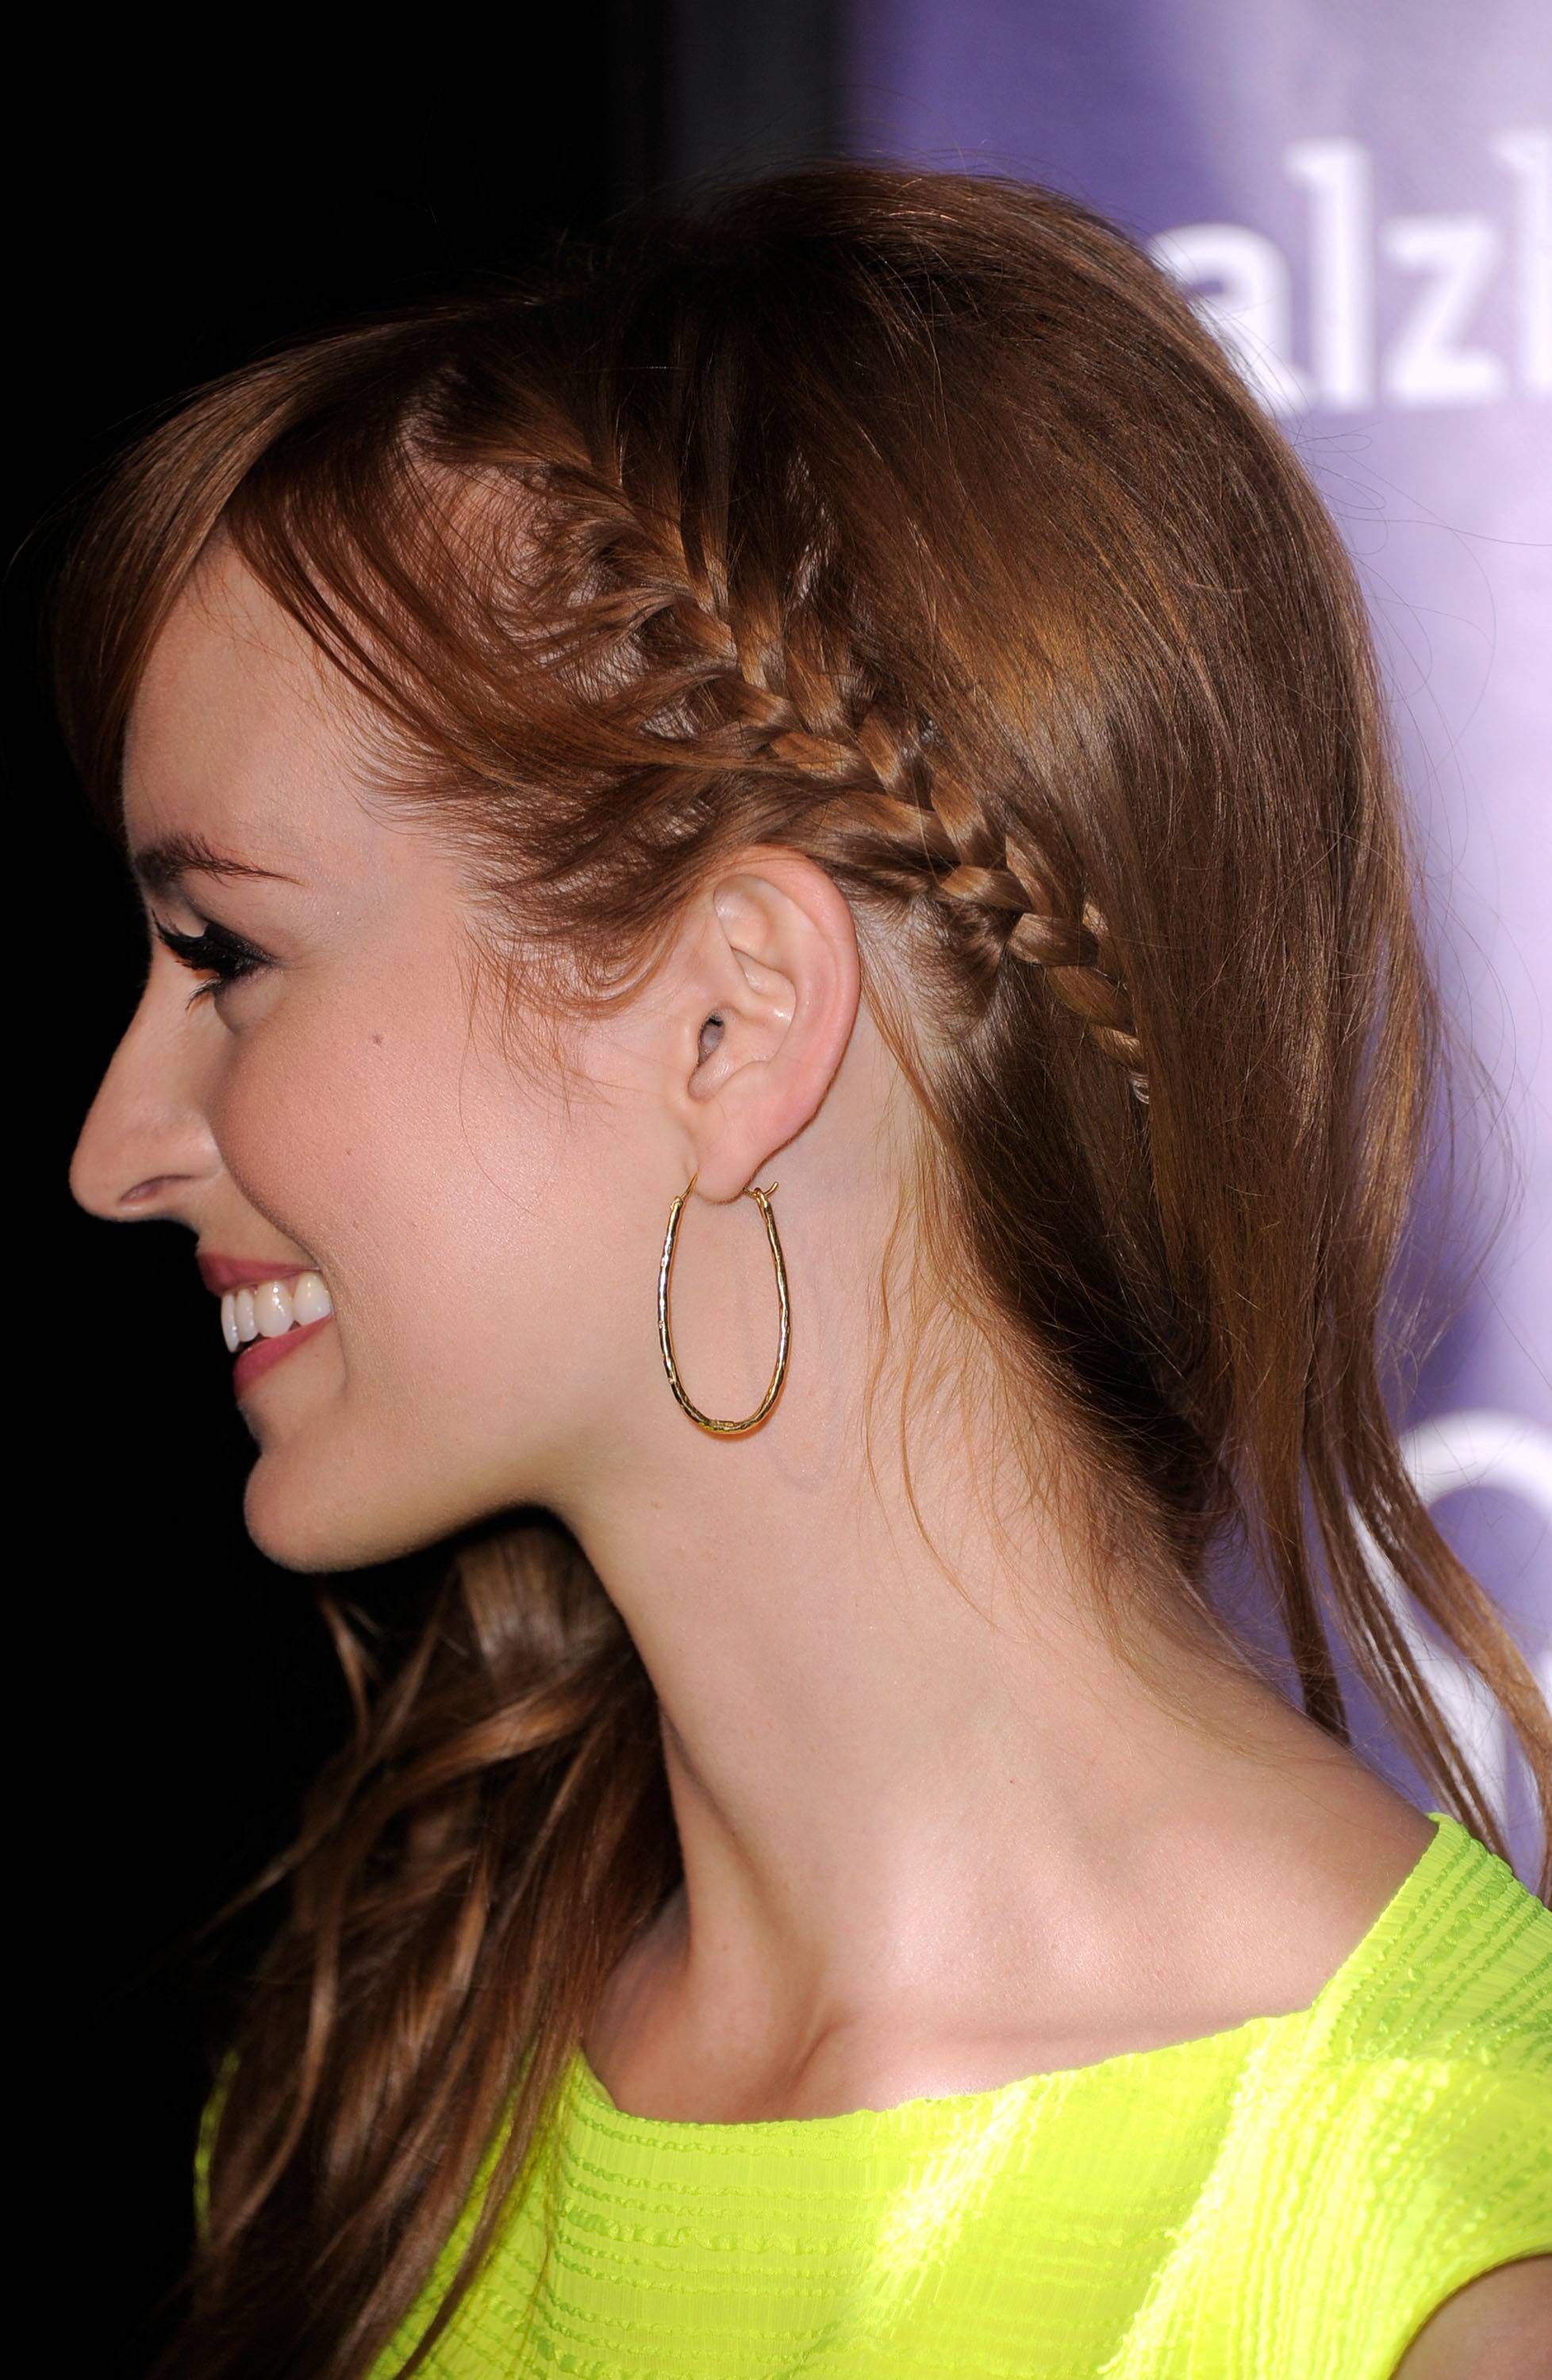 Prom Hairstyle Braid  Braided Hairstyles Inspirations for Prom and Parties